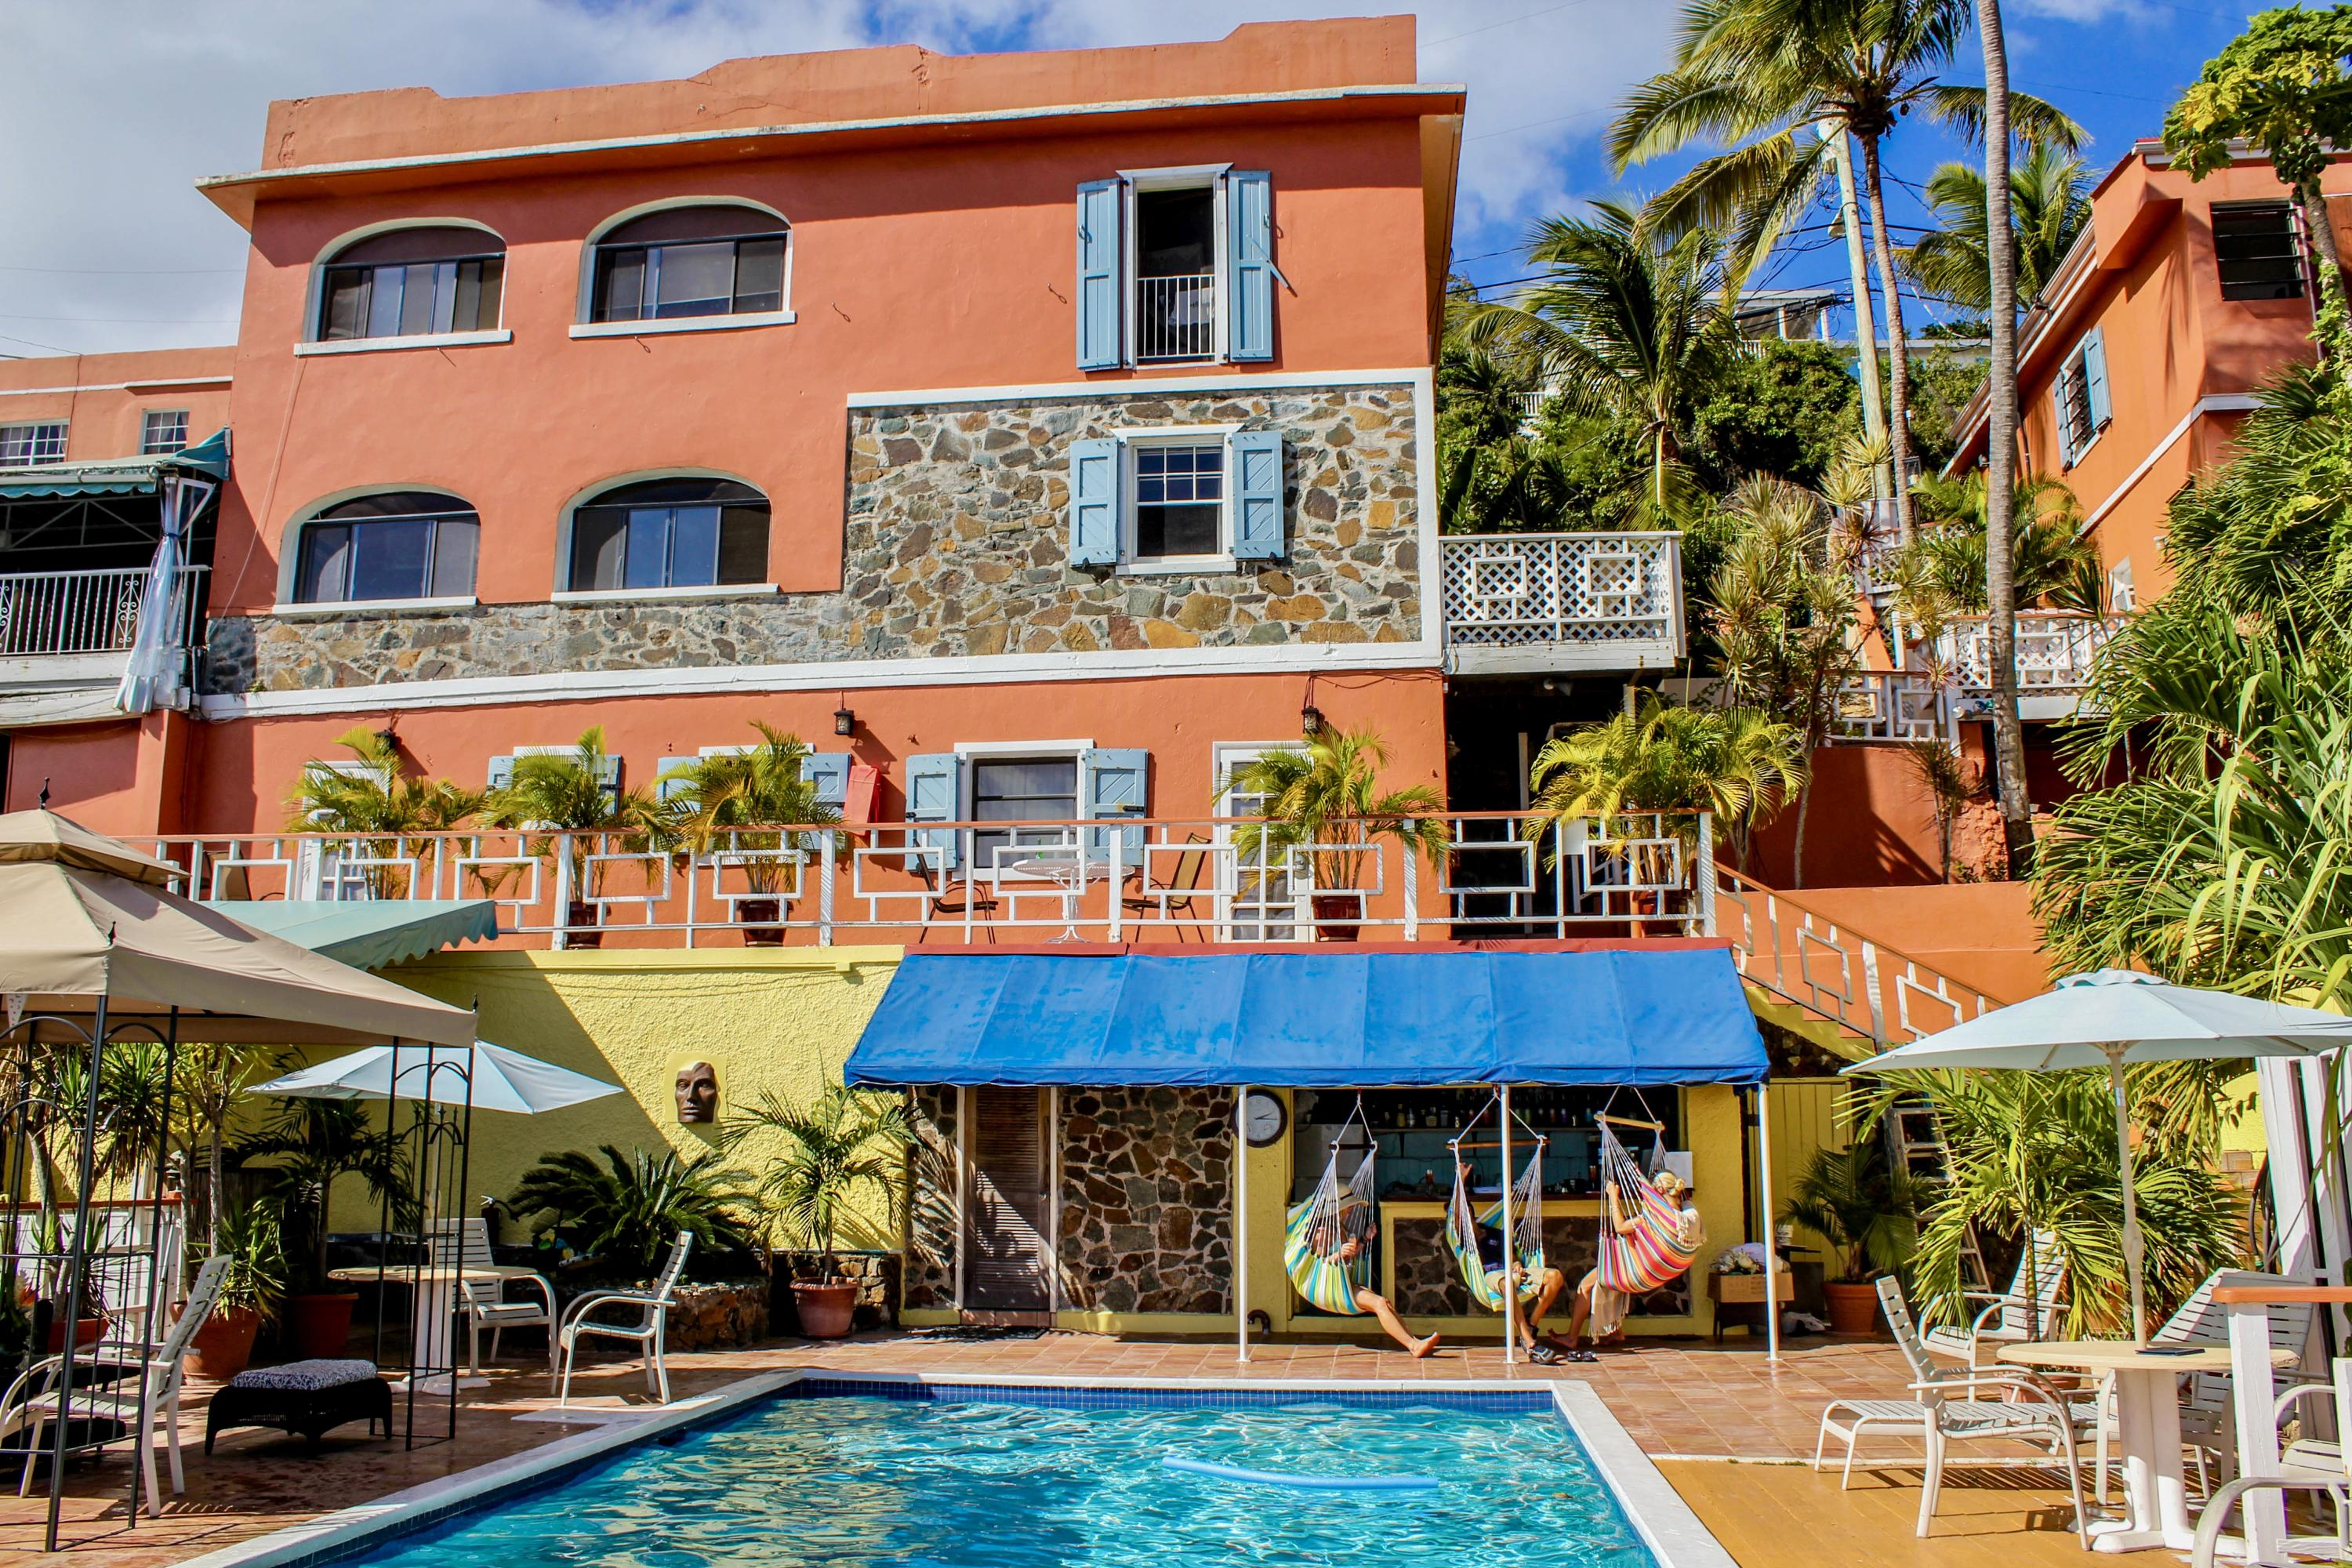 RE/MAX real estate, US Virgin Islands, Mafolie, New Listing  Commercial  Mafolie GNS